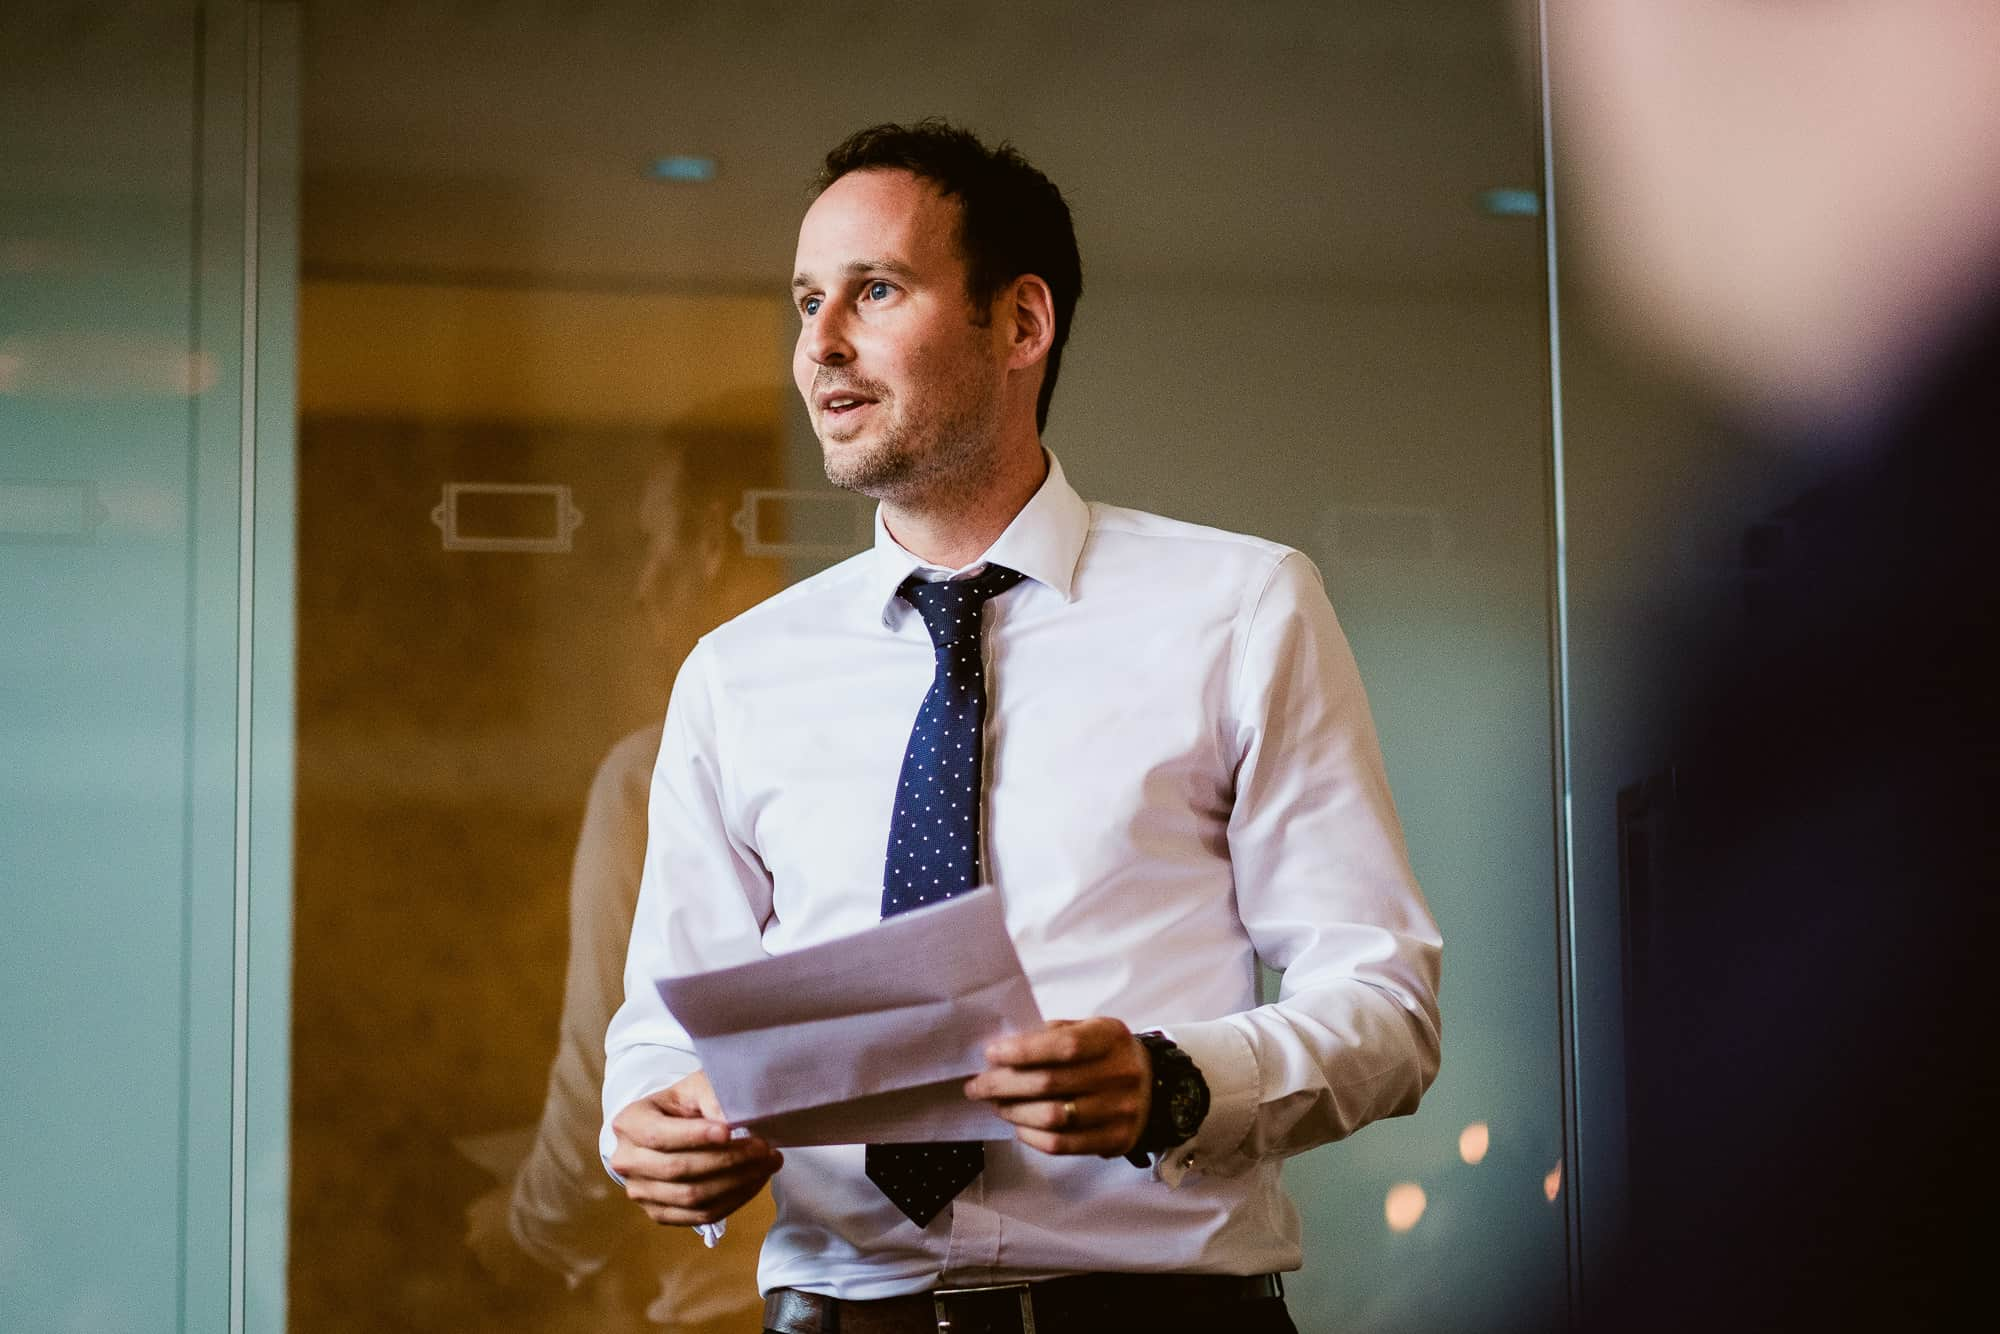 bethnal-green-town-hall-hotel-wedding-photography-0058